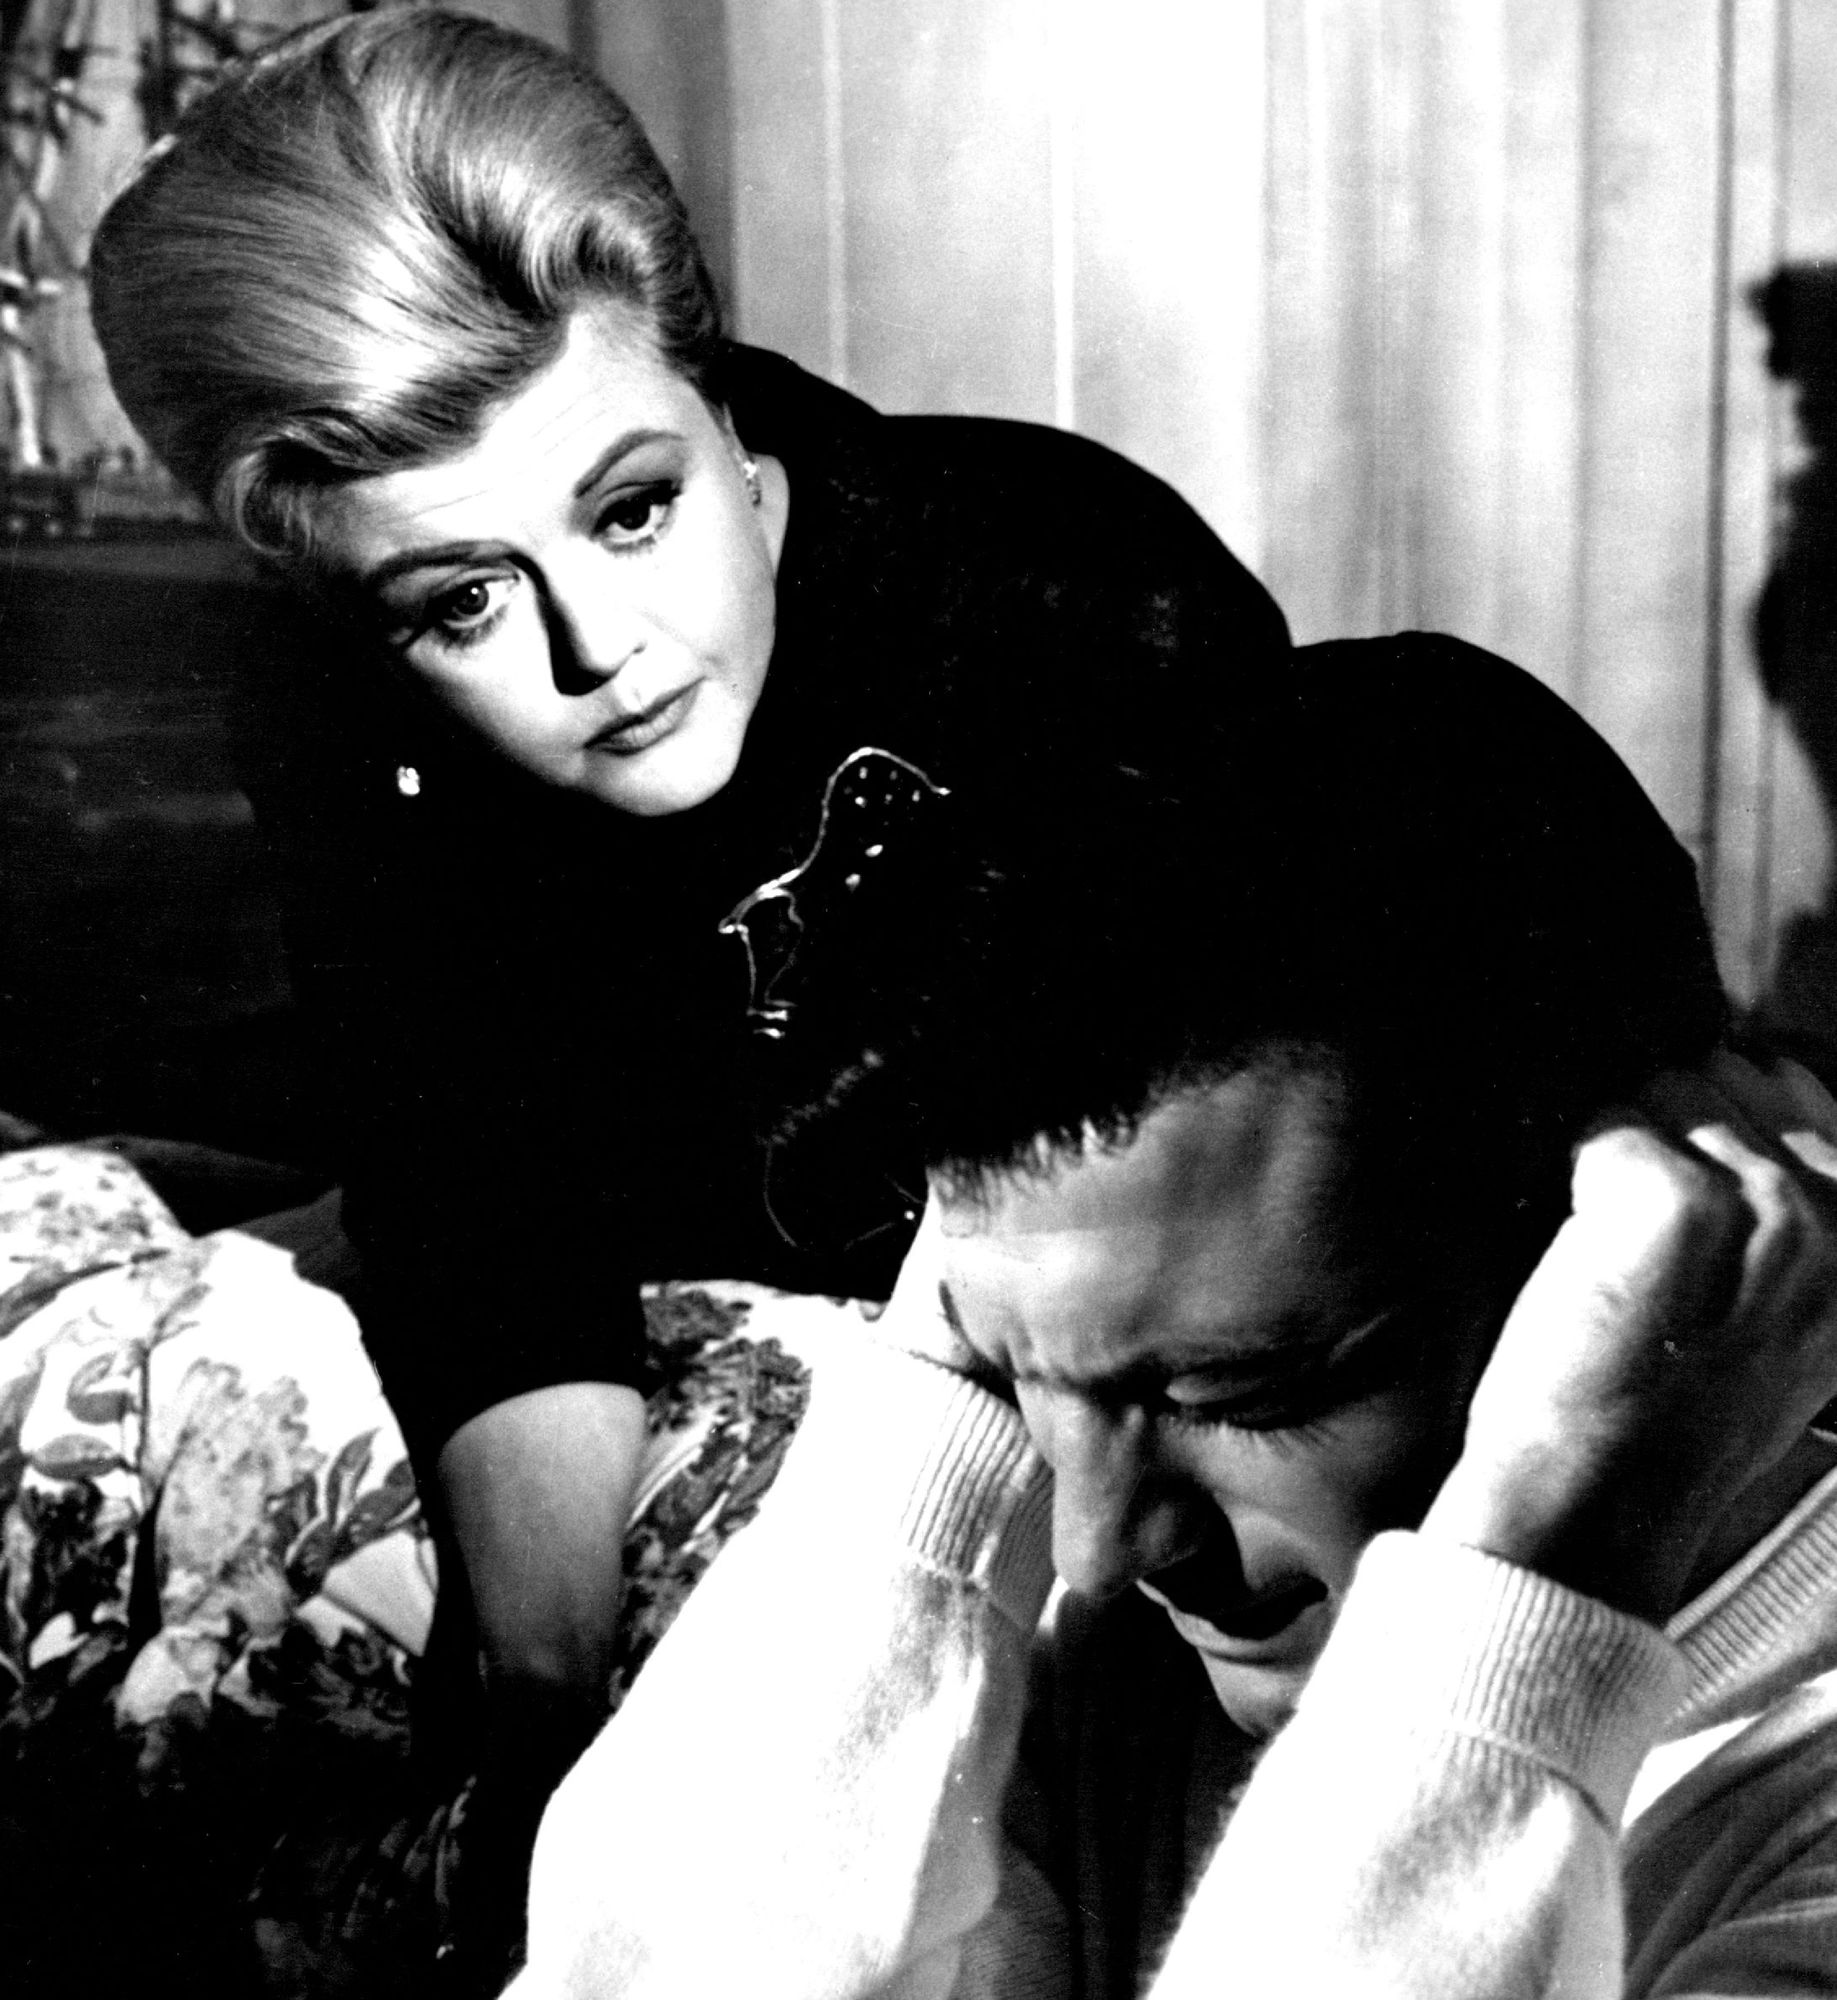 Angela Lansbury portrays the ruthless, scheming mother of Laurence Harvey in 'The Manchurian Candidate.'